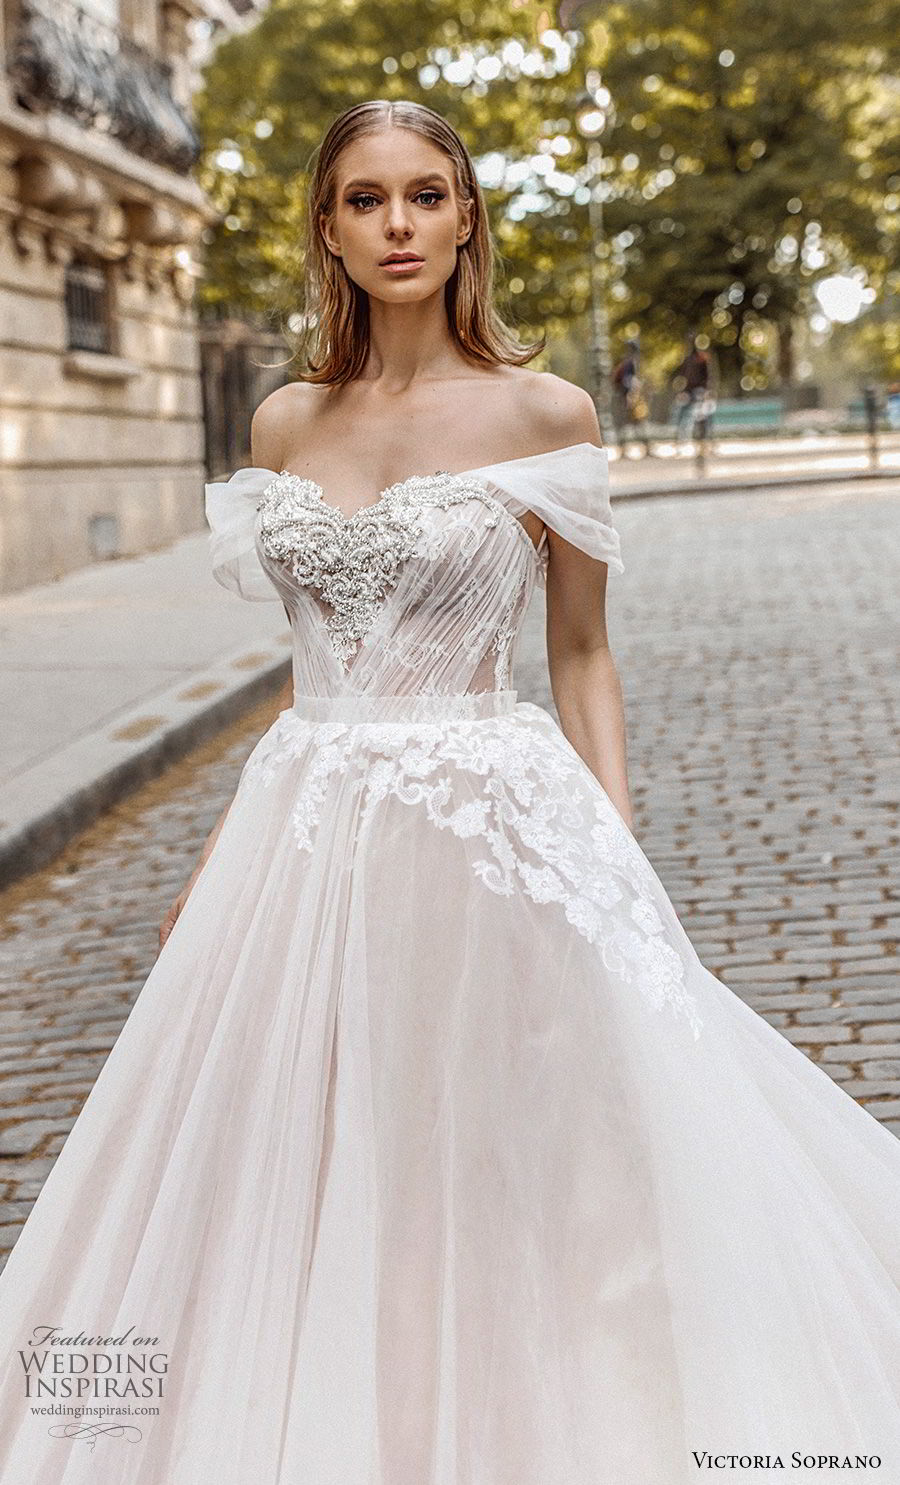 victoria soprano 2019 bridal off the shoulder sweetheart neckline heavily embellished bodice romantic princess a  line ball gown weddding dress royal train (1) zv